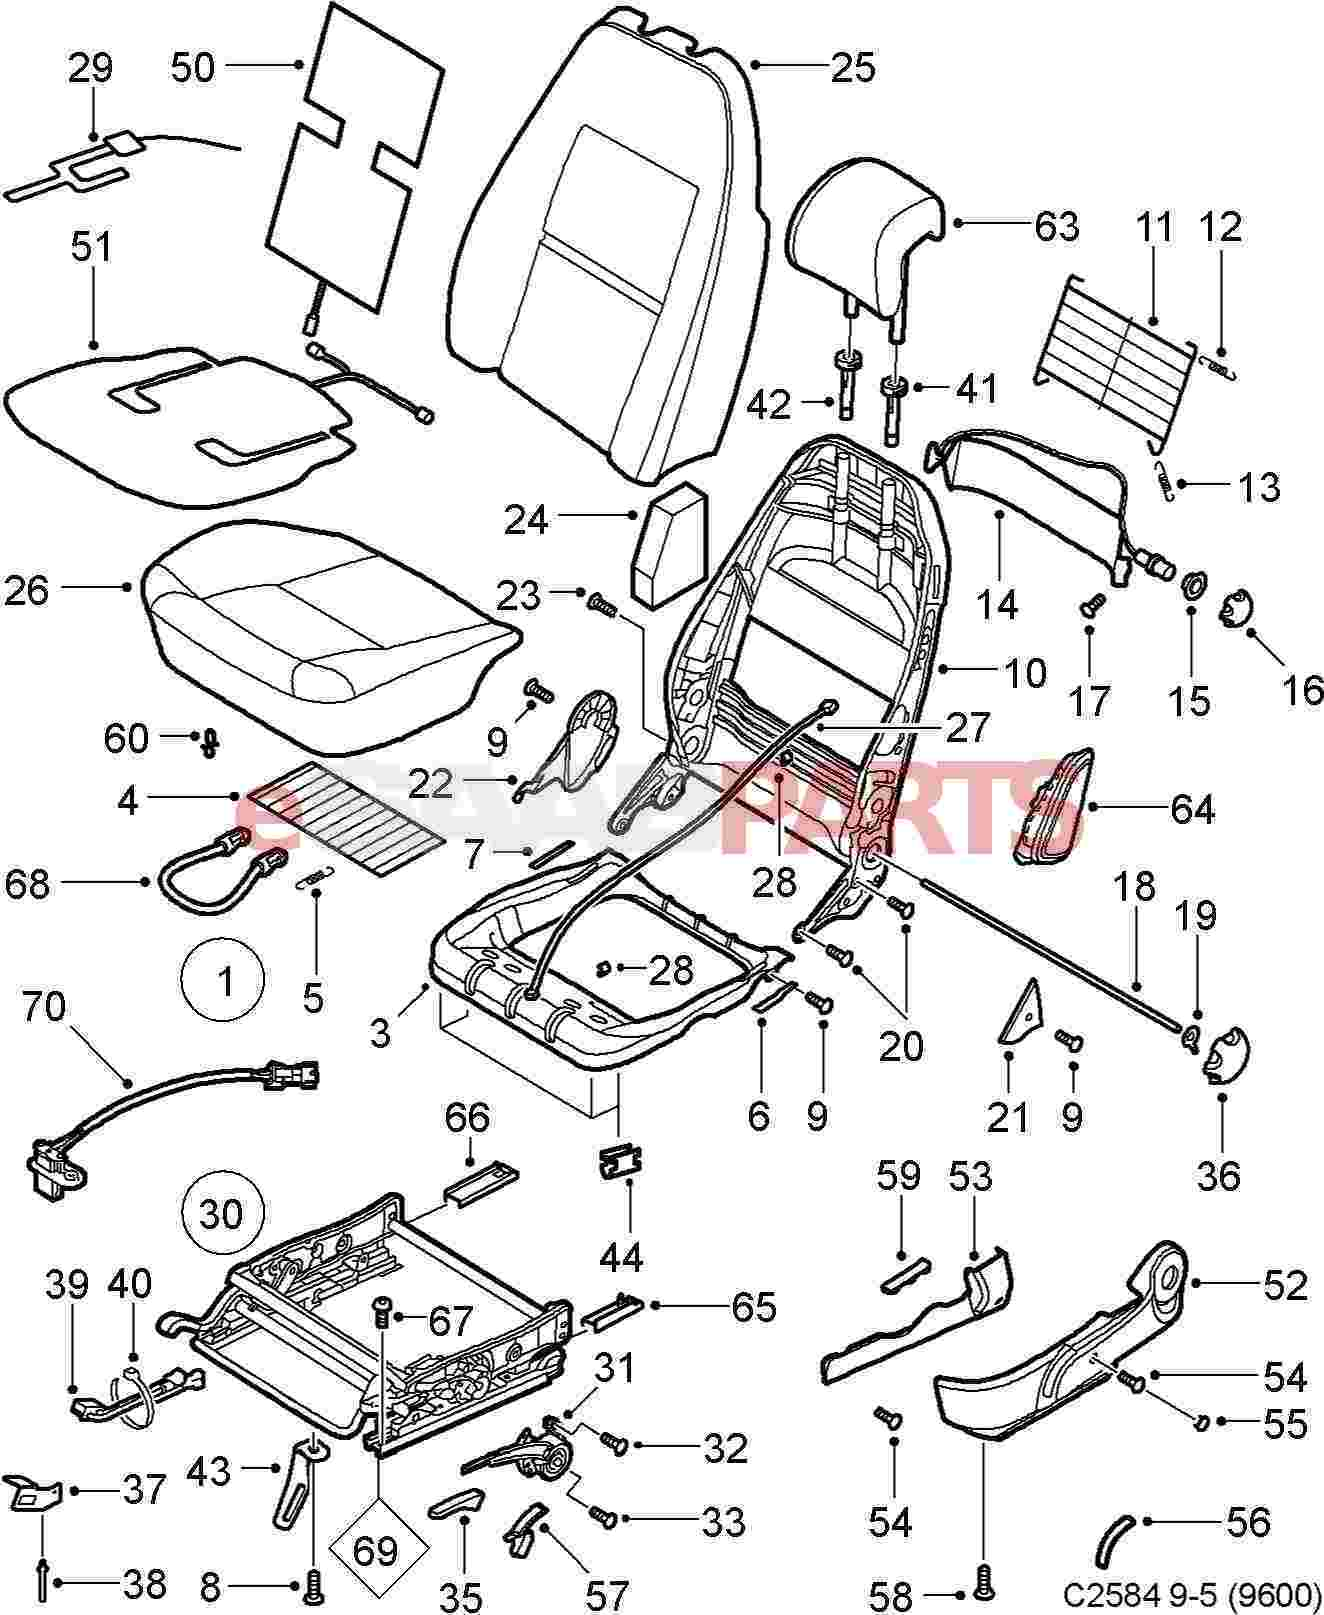 71470 esaabparts com saab 9 5 (9600) \u003e car body internal parts \u003e seat saab 9-5 wiring harness at readyjetset.co